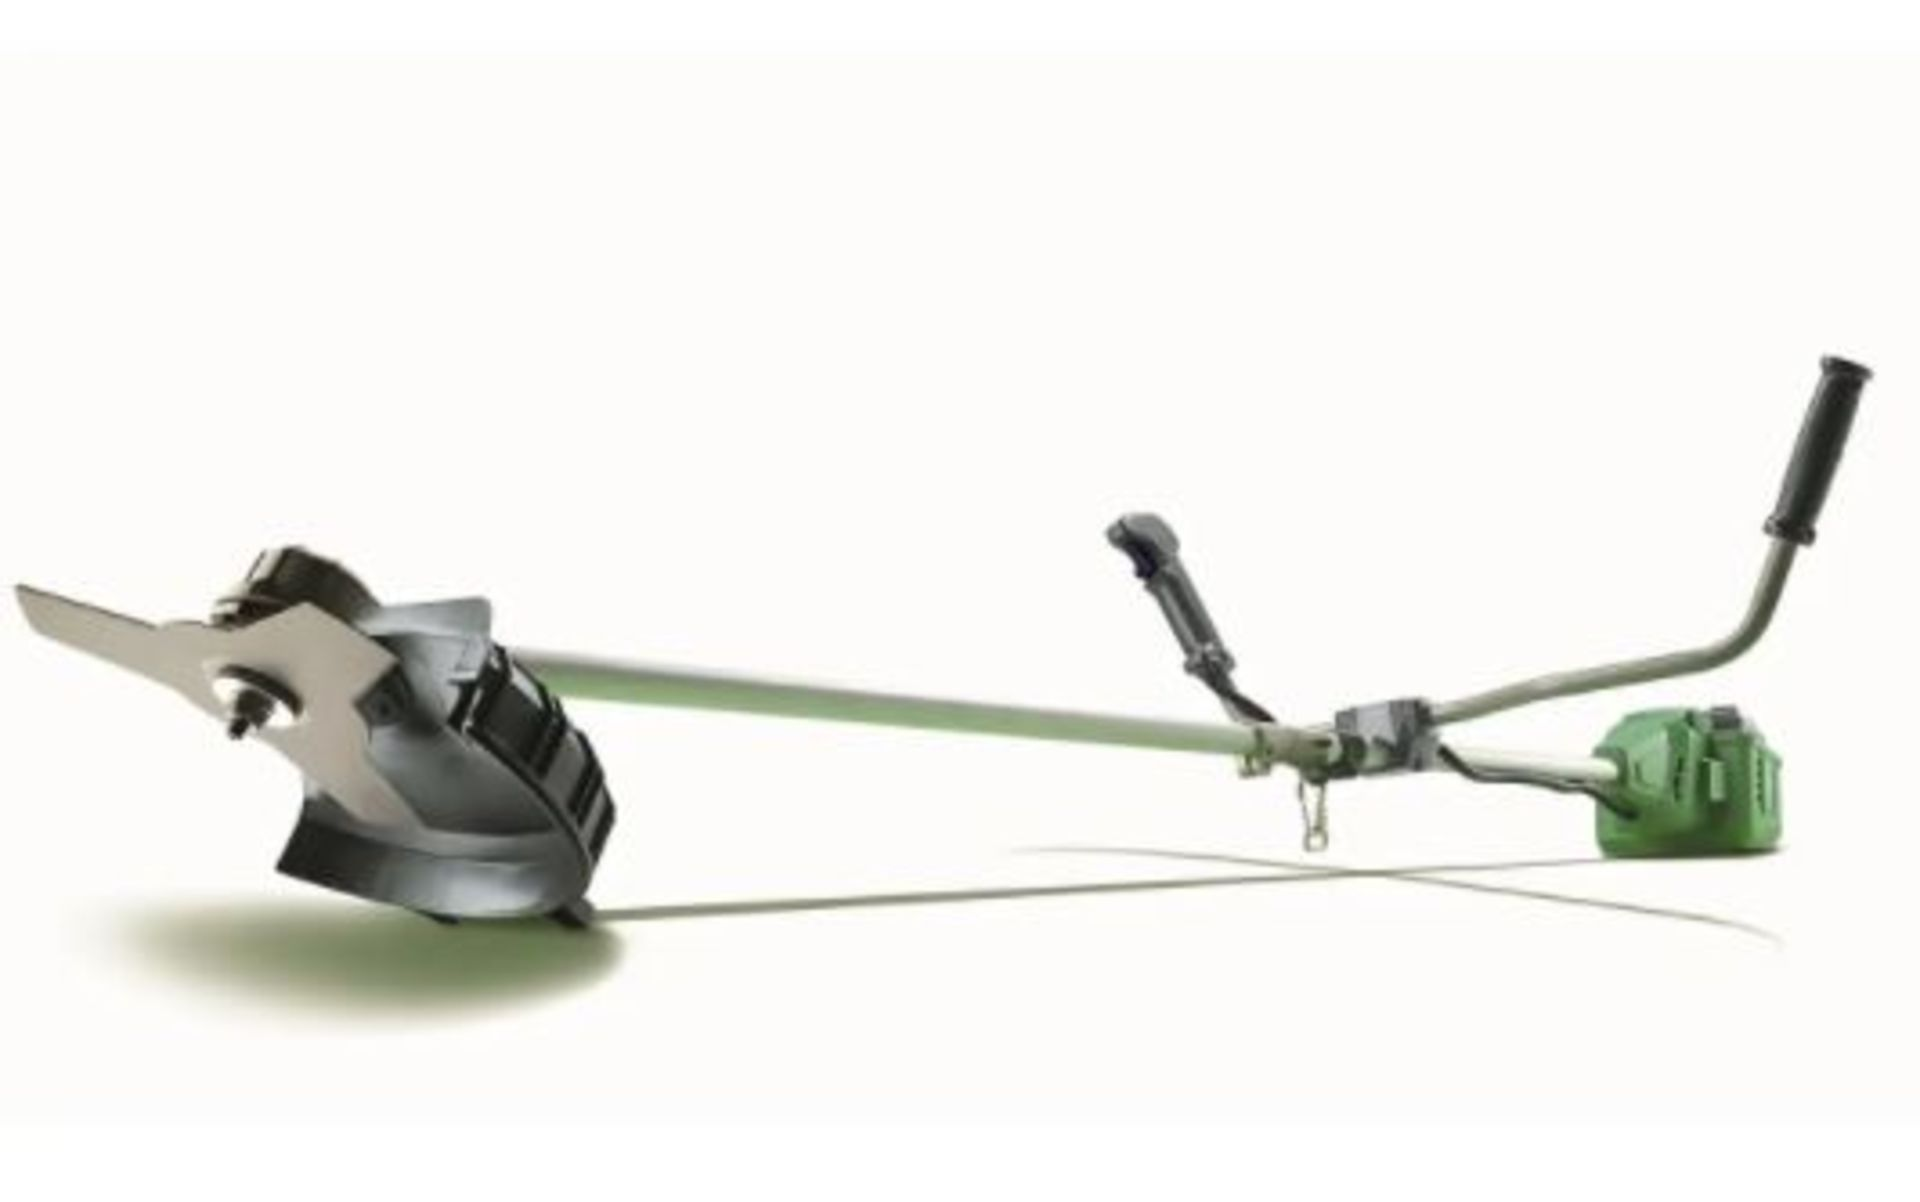 (P5) 2x Powerbase Items. 1x 25cm 20V Cordless Grass Trimmer RRP £59 (Unit Appears Clean, Unused Wit - Image 2 of 5